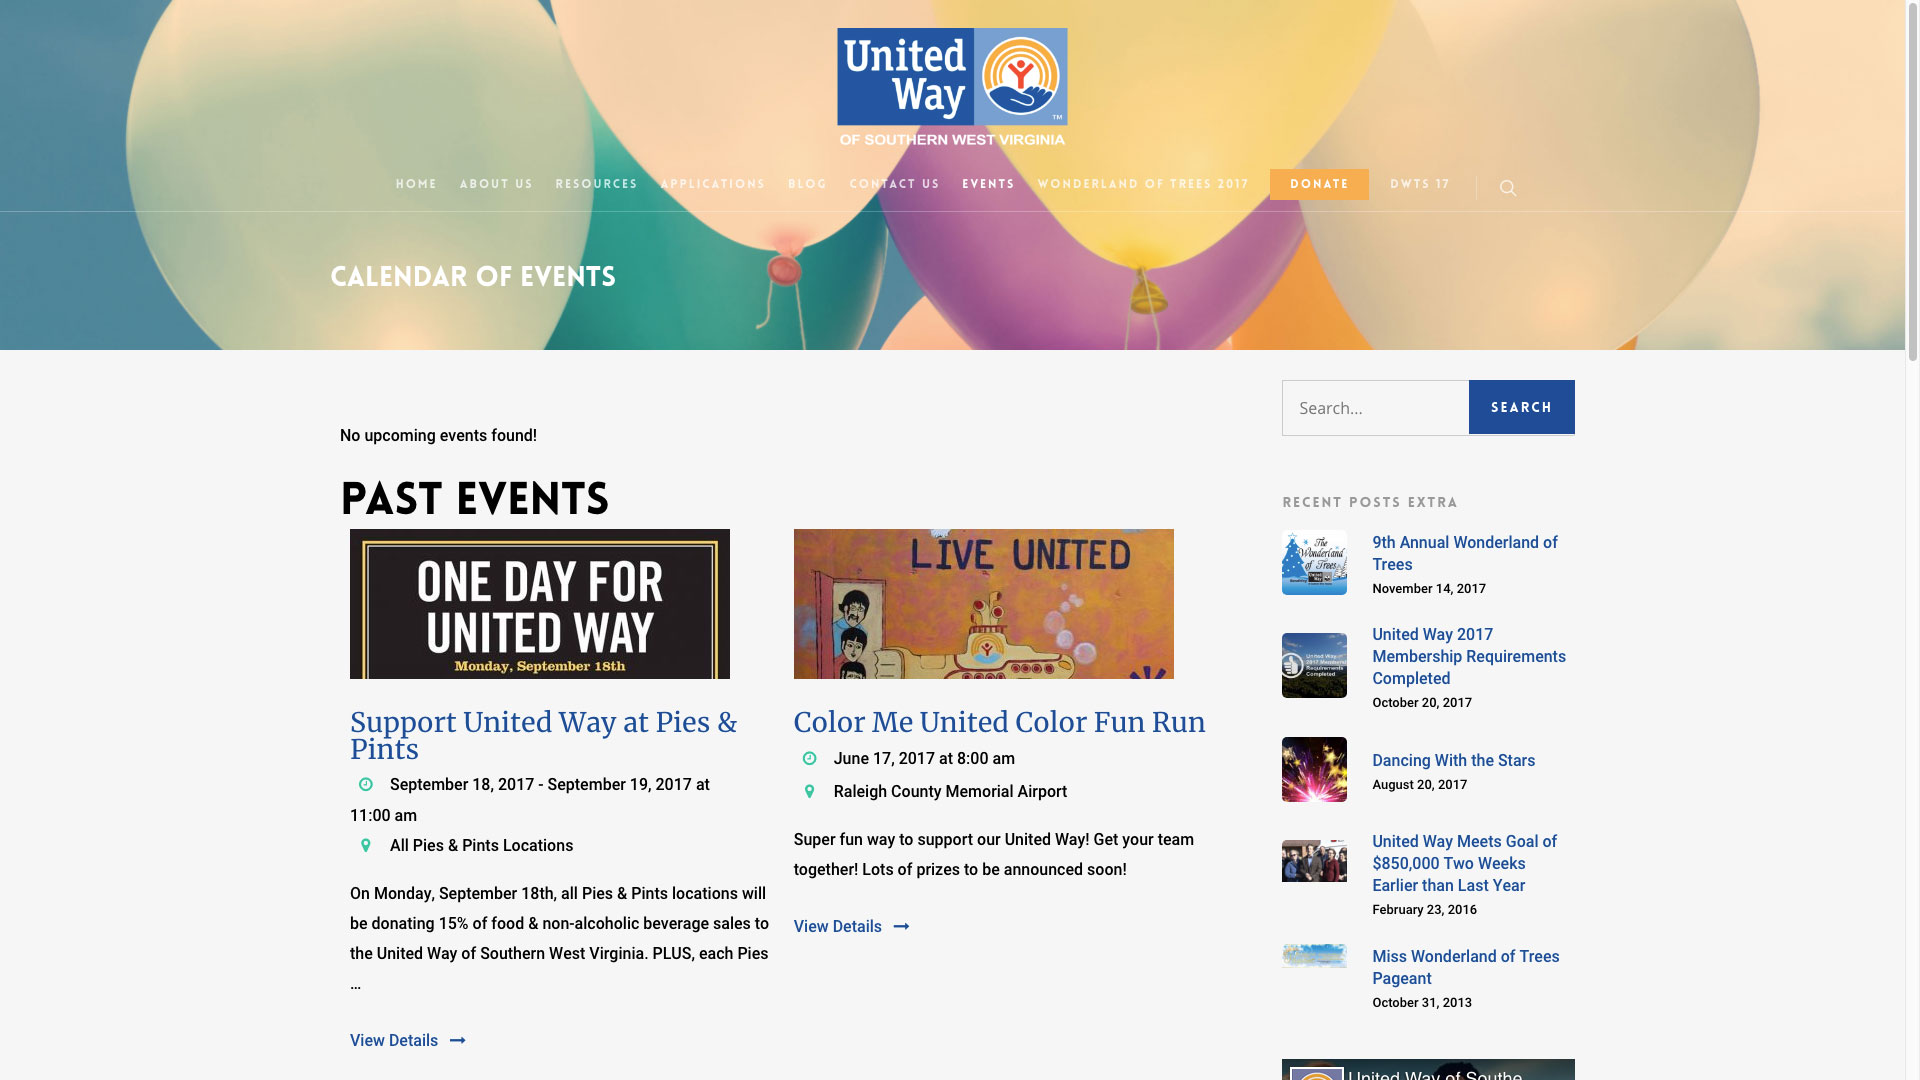 united-way-calendar-of-events-web-design